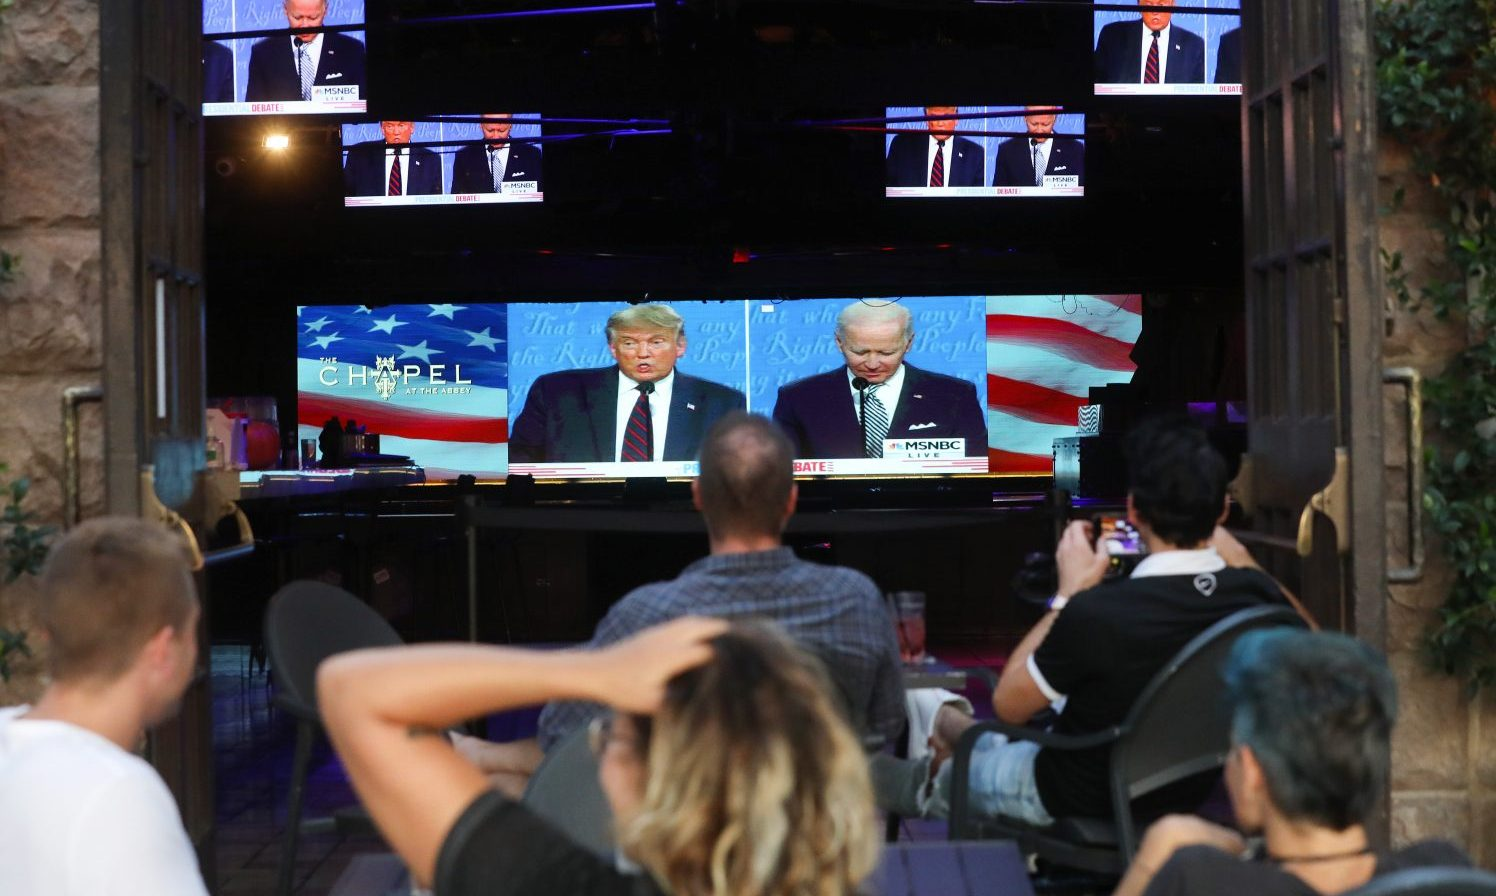 Who Won That Messy Presidential Debate? Certainly Not Americans